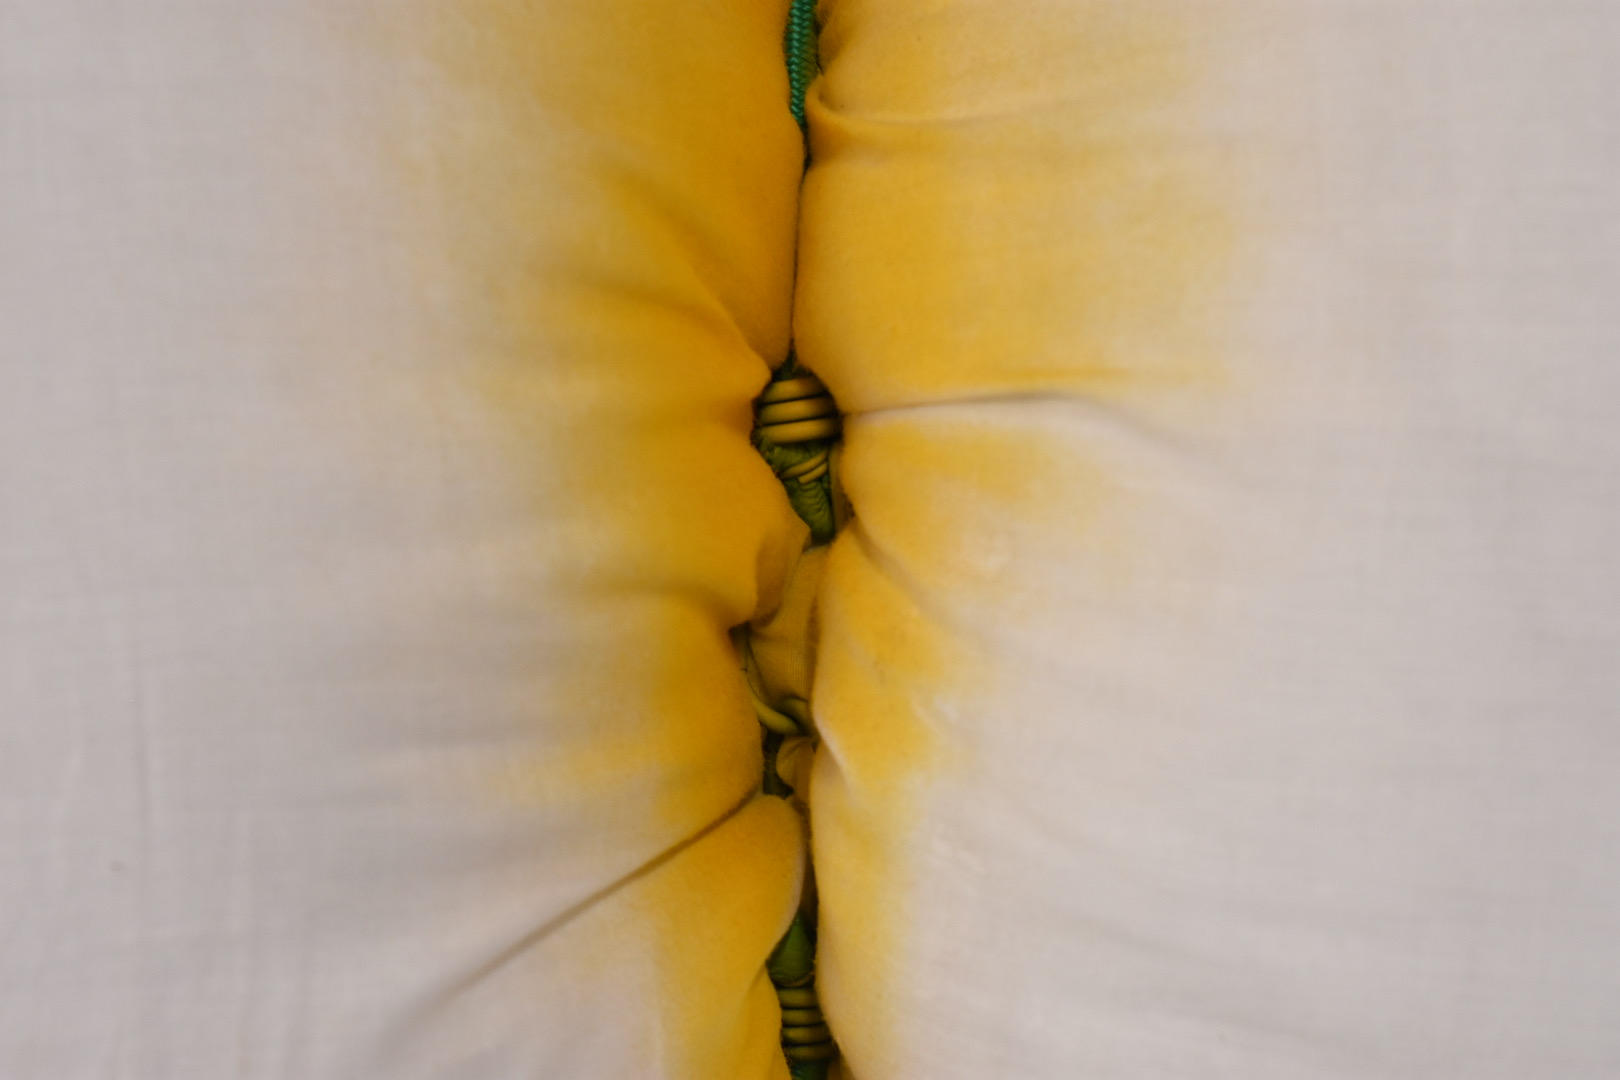 Sculpture by Rachel Walters- canvas, pillow, bungee cord, spray paint and golden earrings